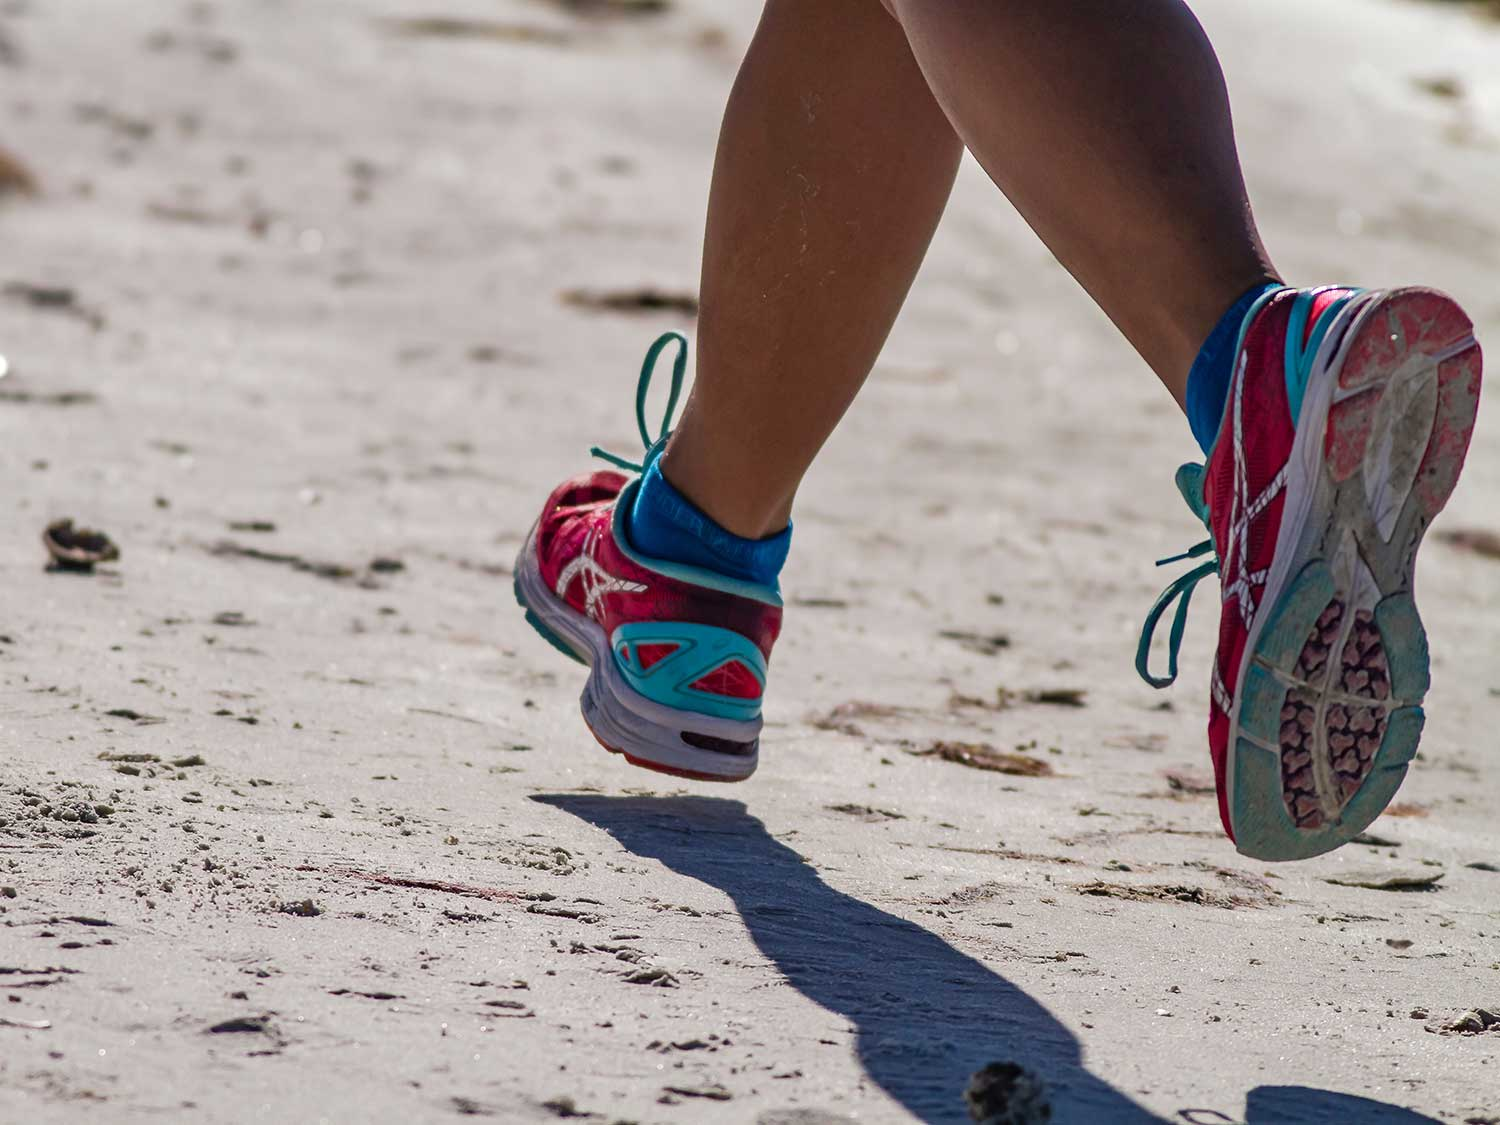 Running on beach with running shoes.